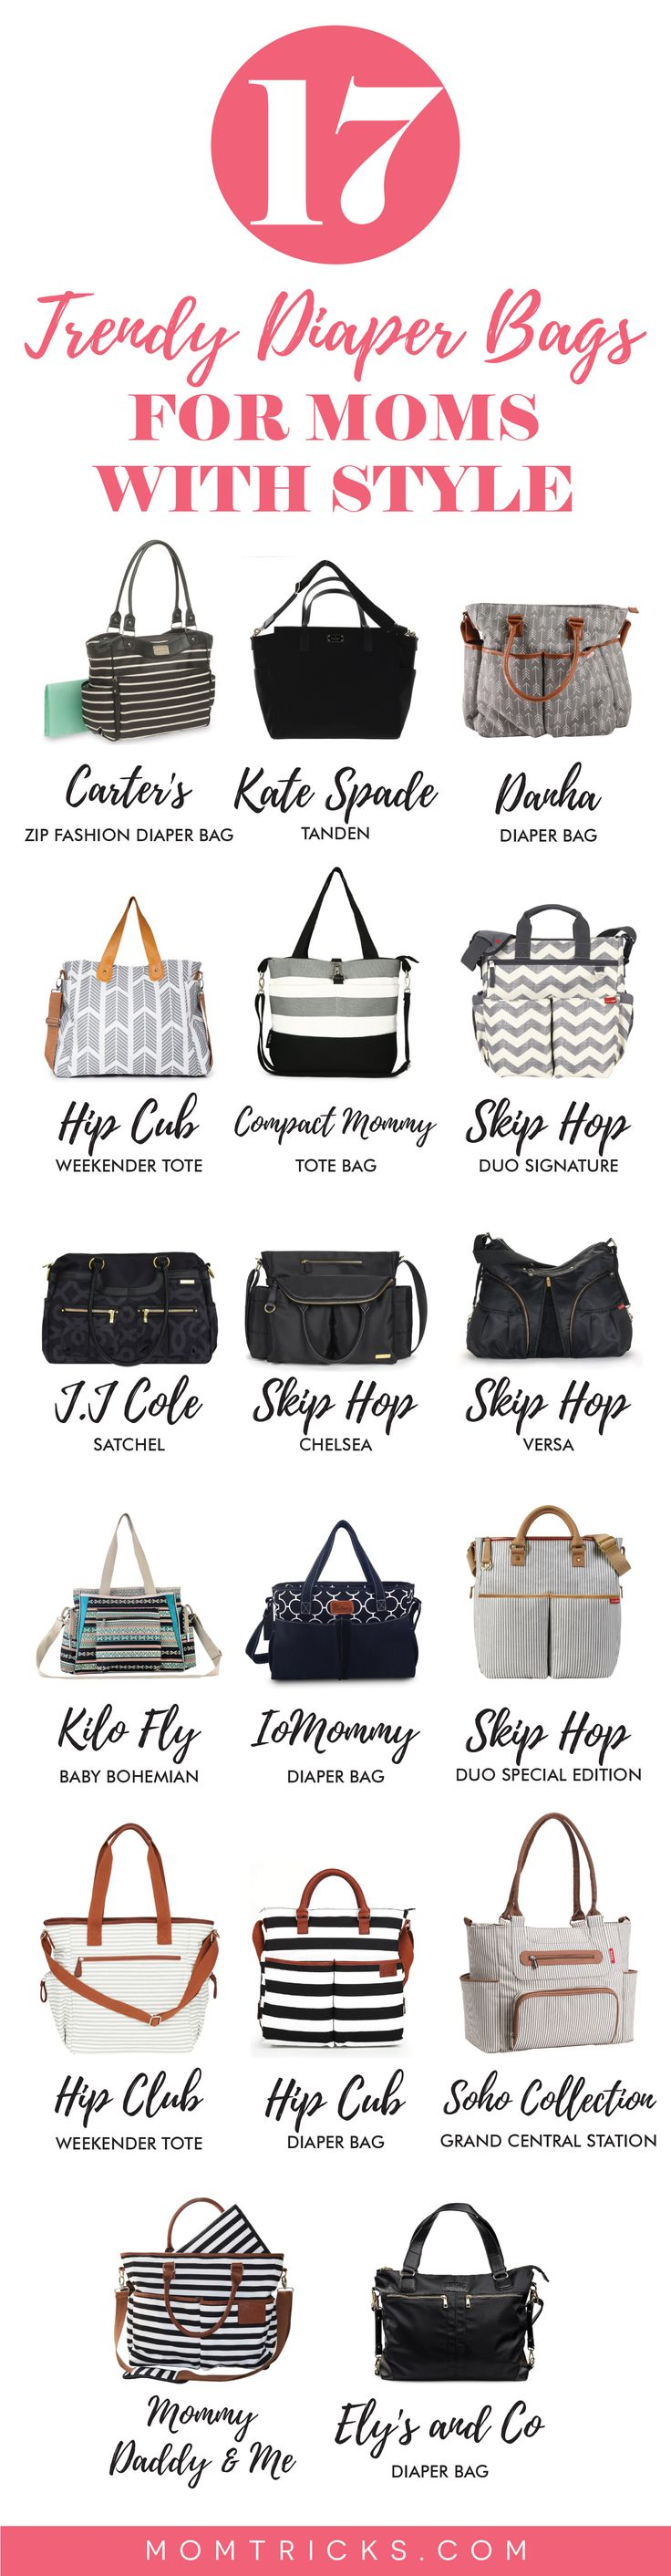 Diaper bags don't have to be frumpy. Here are some amazing little diaper bags you'll LOVE to carry!